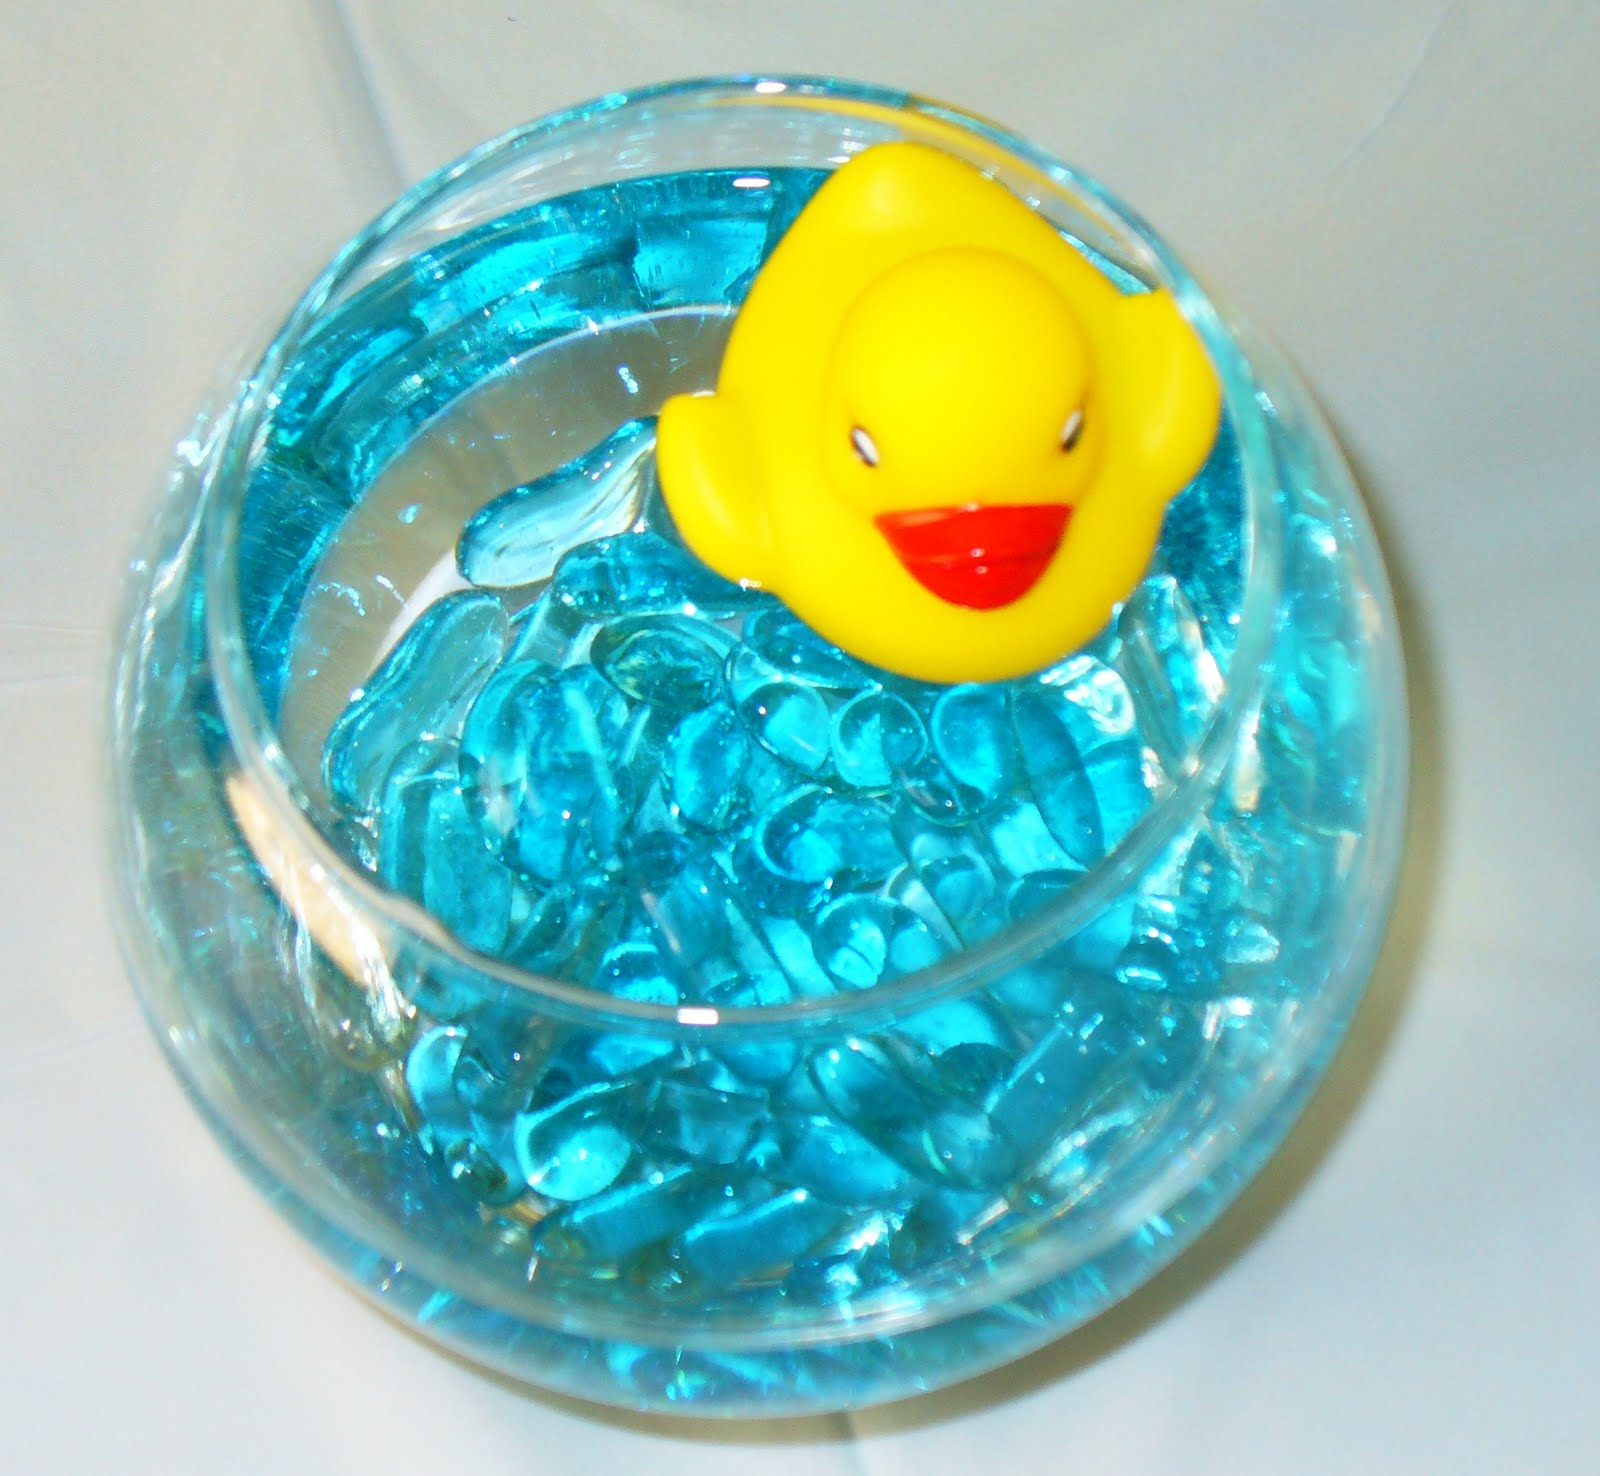 Rubber Duck Baby Shower Centerpieces http://elegantesoirees.blogspot.com/2011/05/rubber-duck-shower-guest-table.html